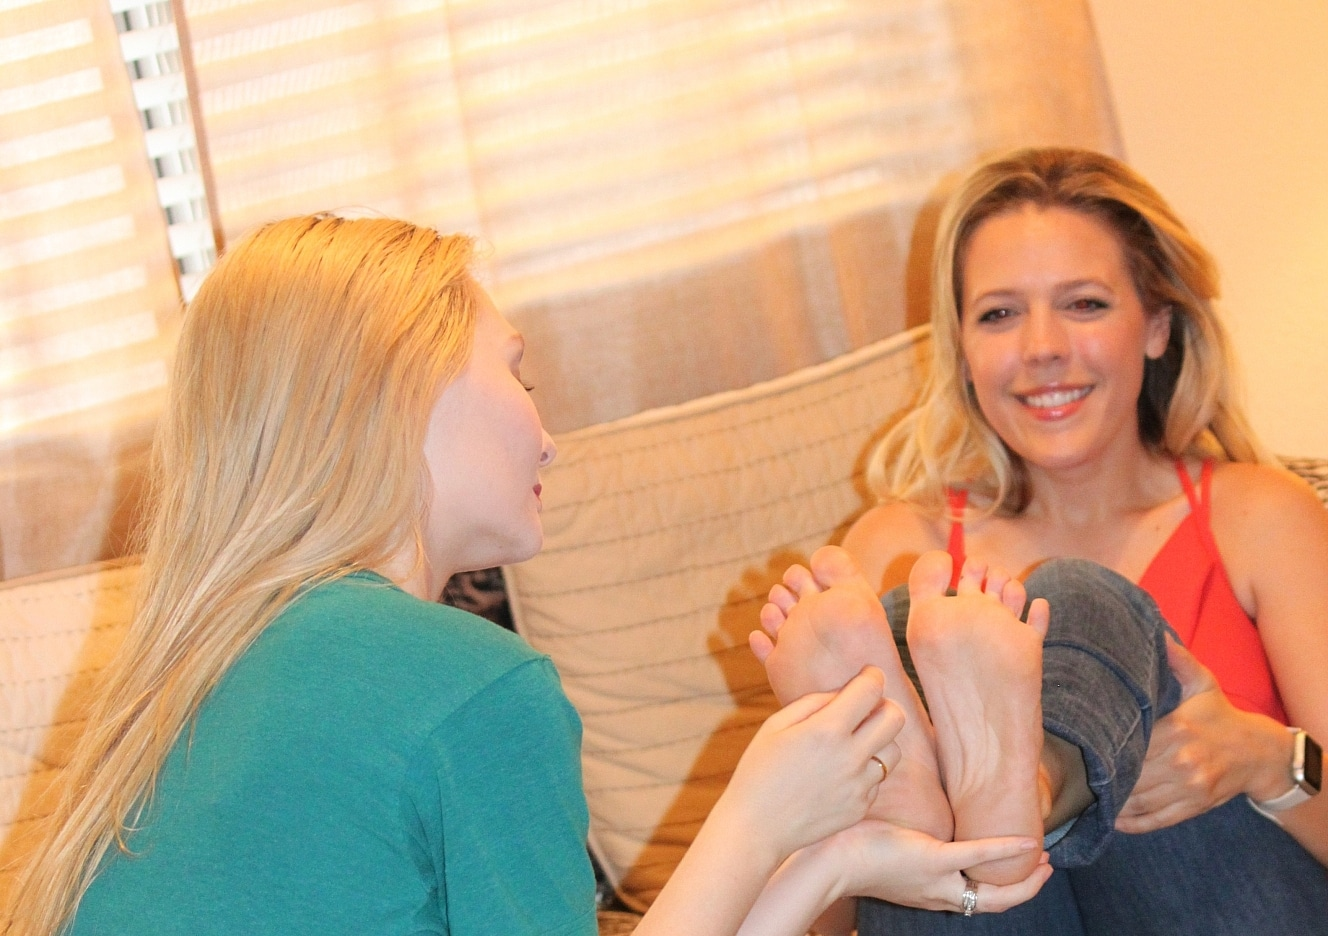 content/mistress-jessica-gets-foot-worship-and-tickle-part-2/0.jpg